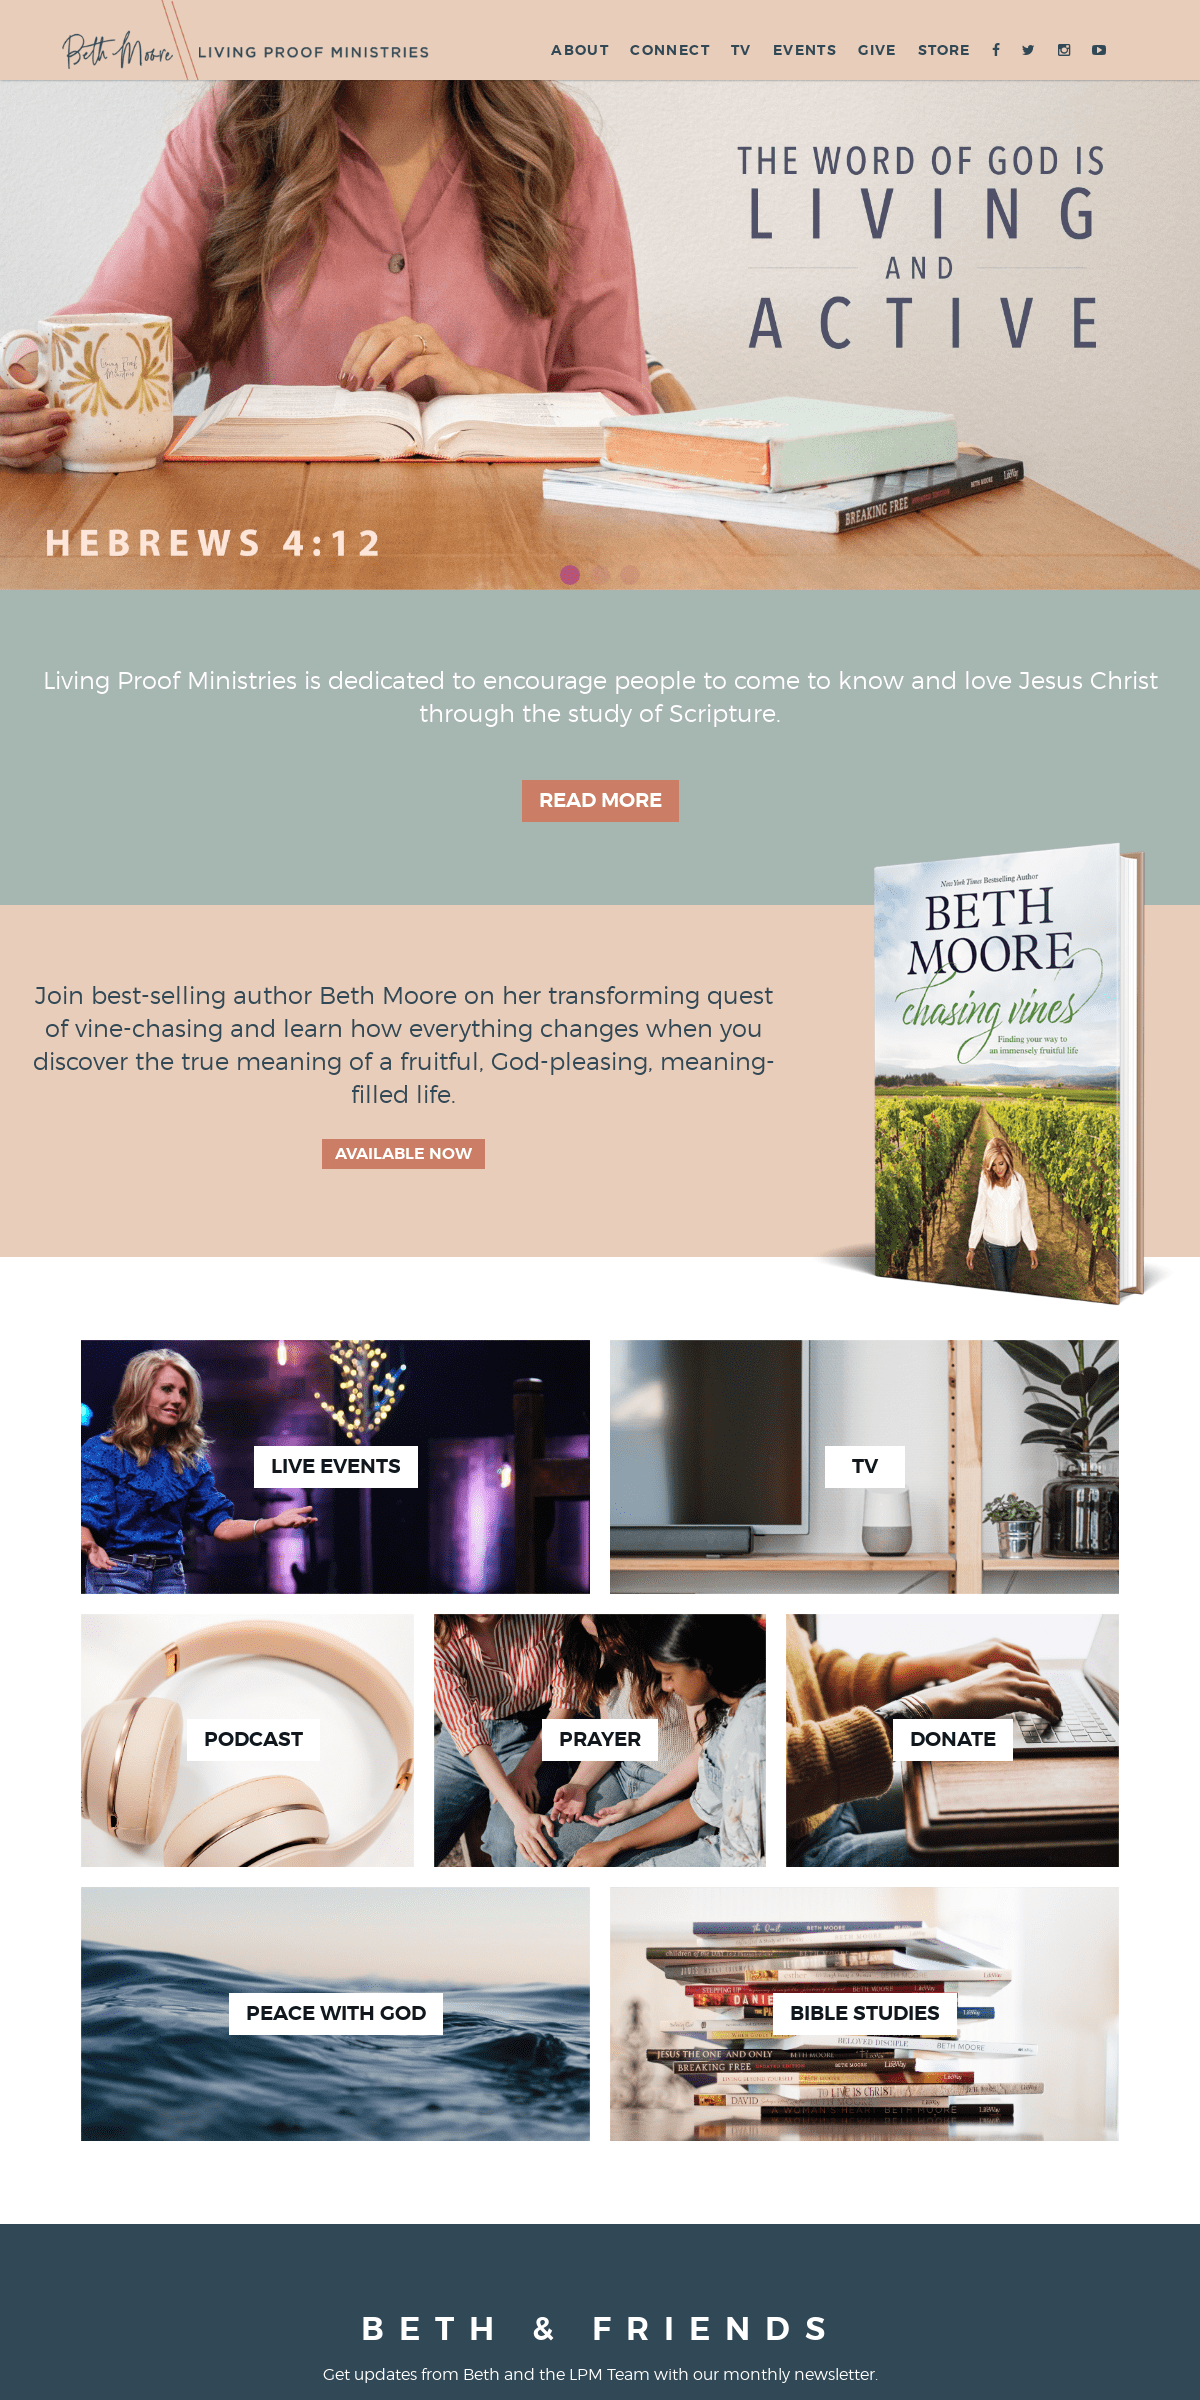 Living Proof Ministries - Beth Moore - Official Site